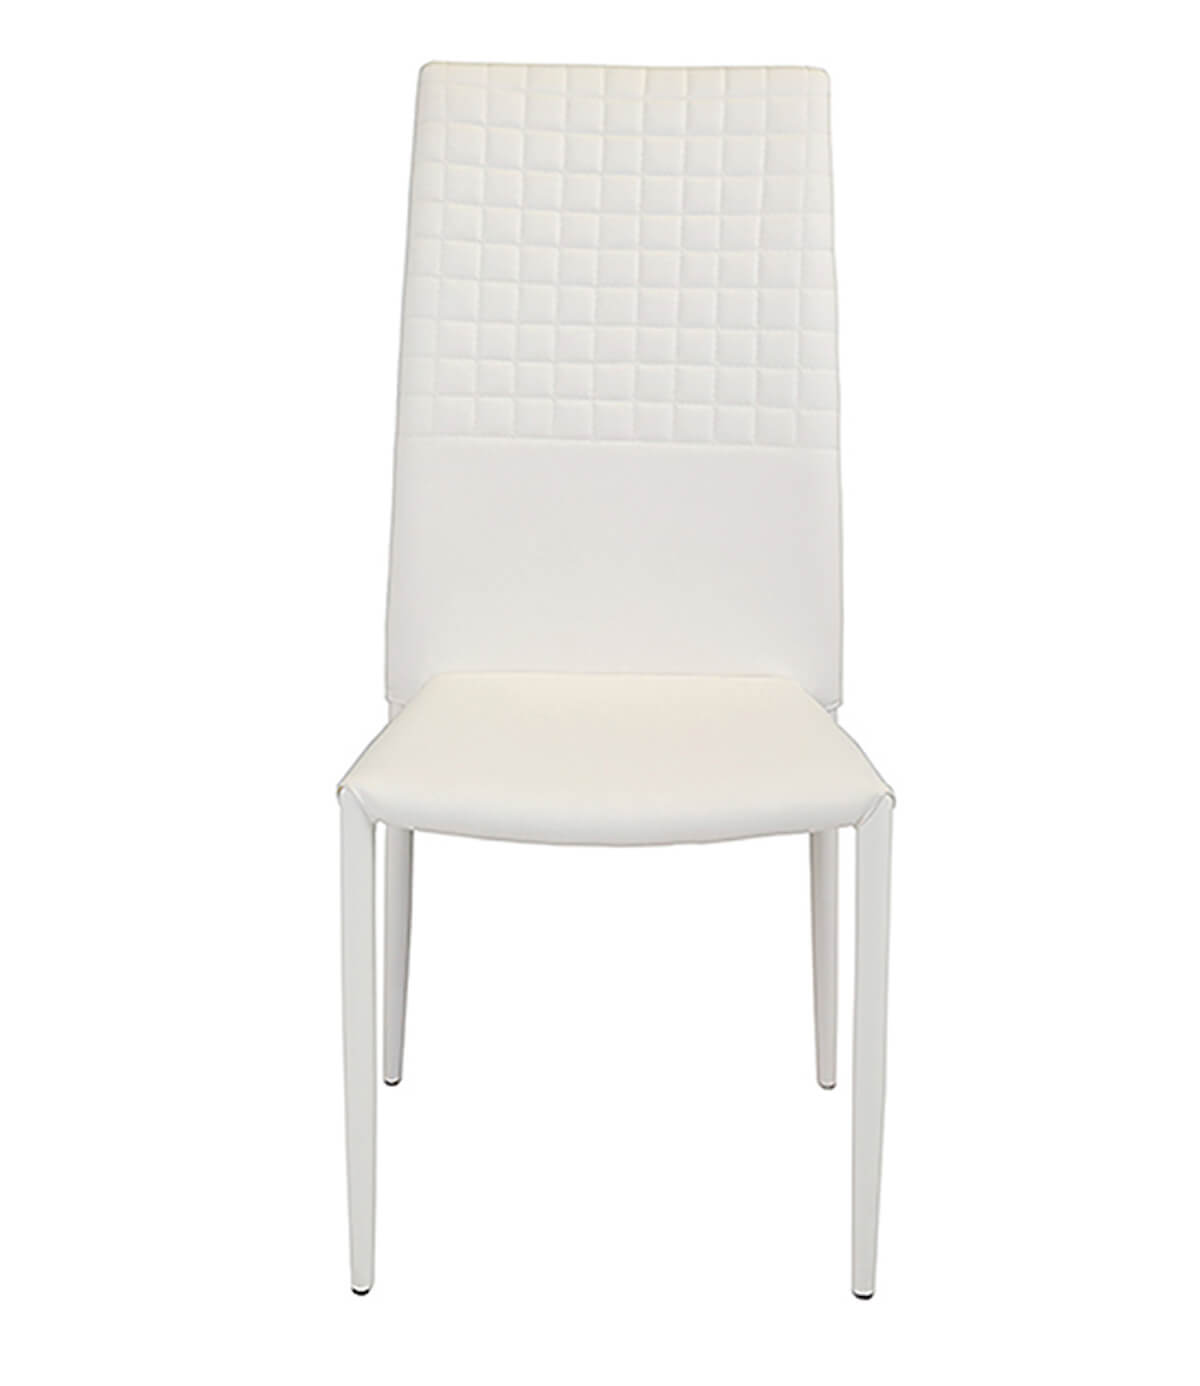 white faux leather chair black and blue gaming cuba modern dining manchester